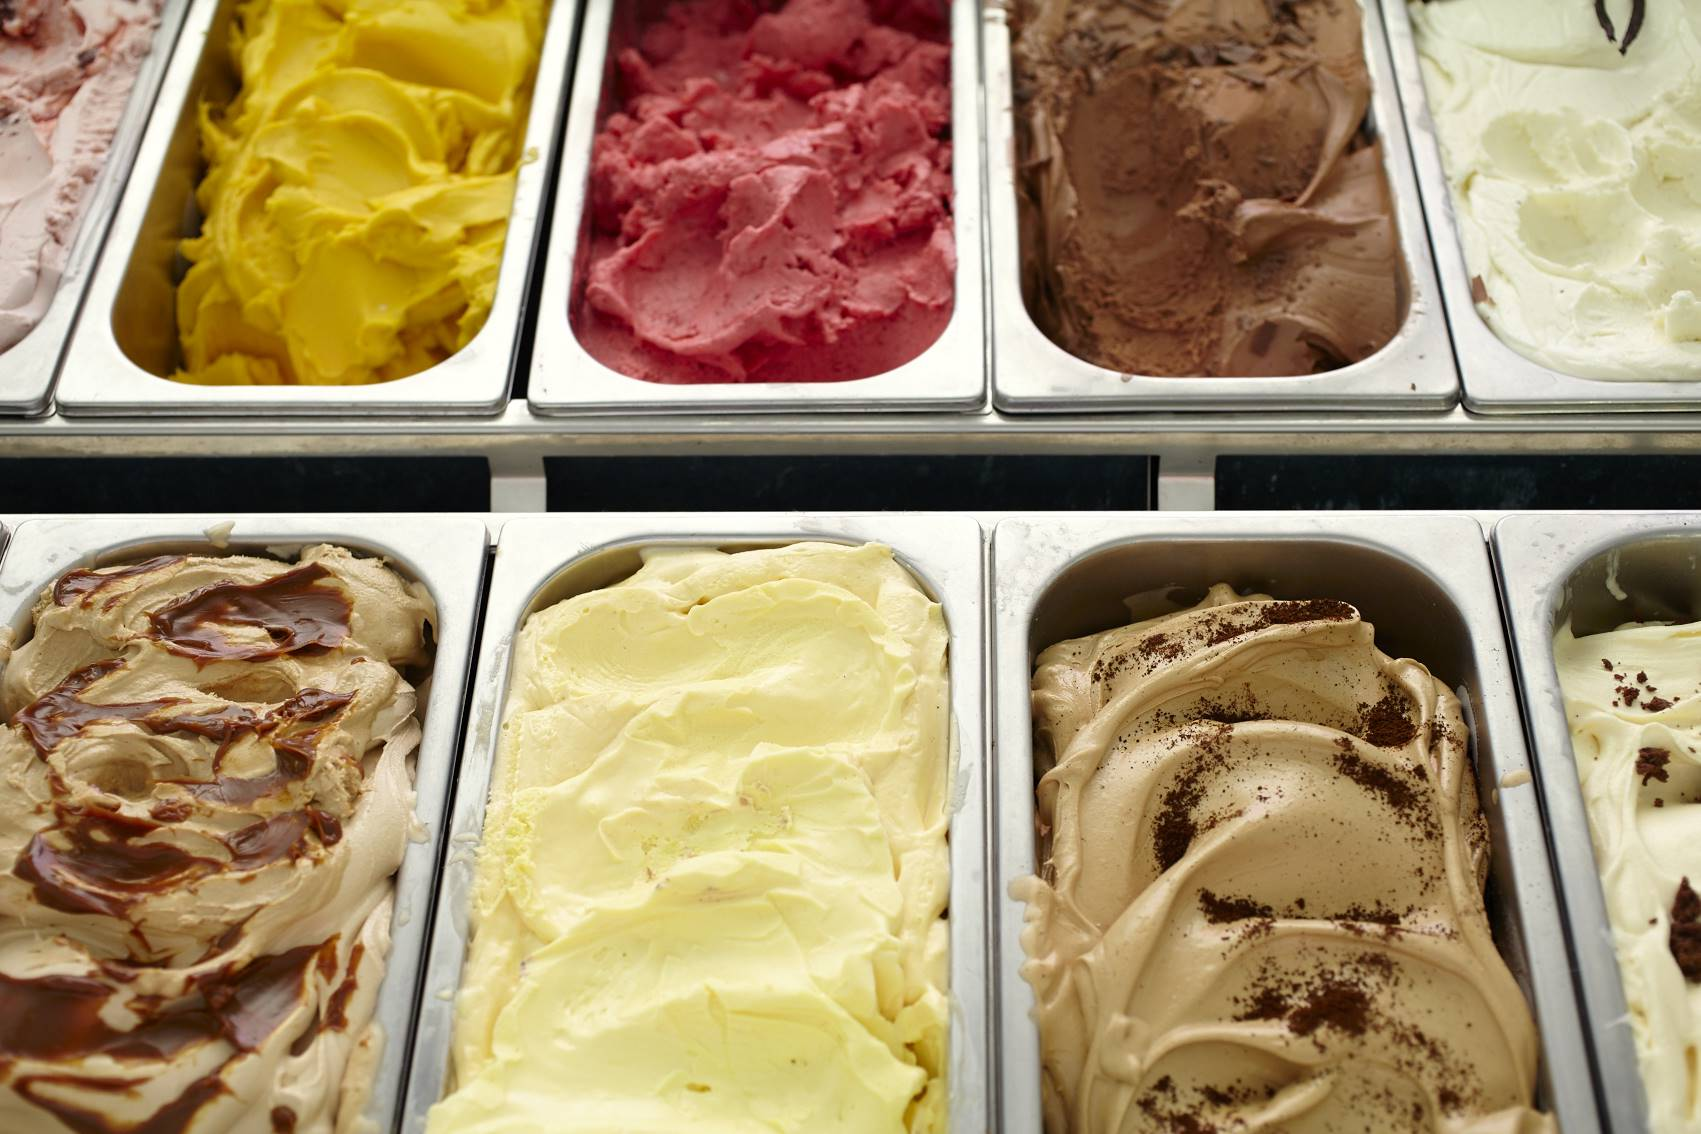 Mrs Jones The Baker's award winning gelato made in-house